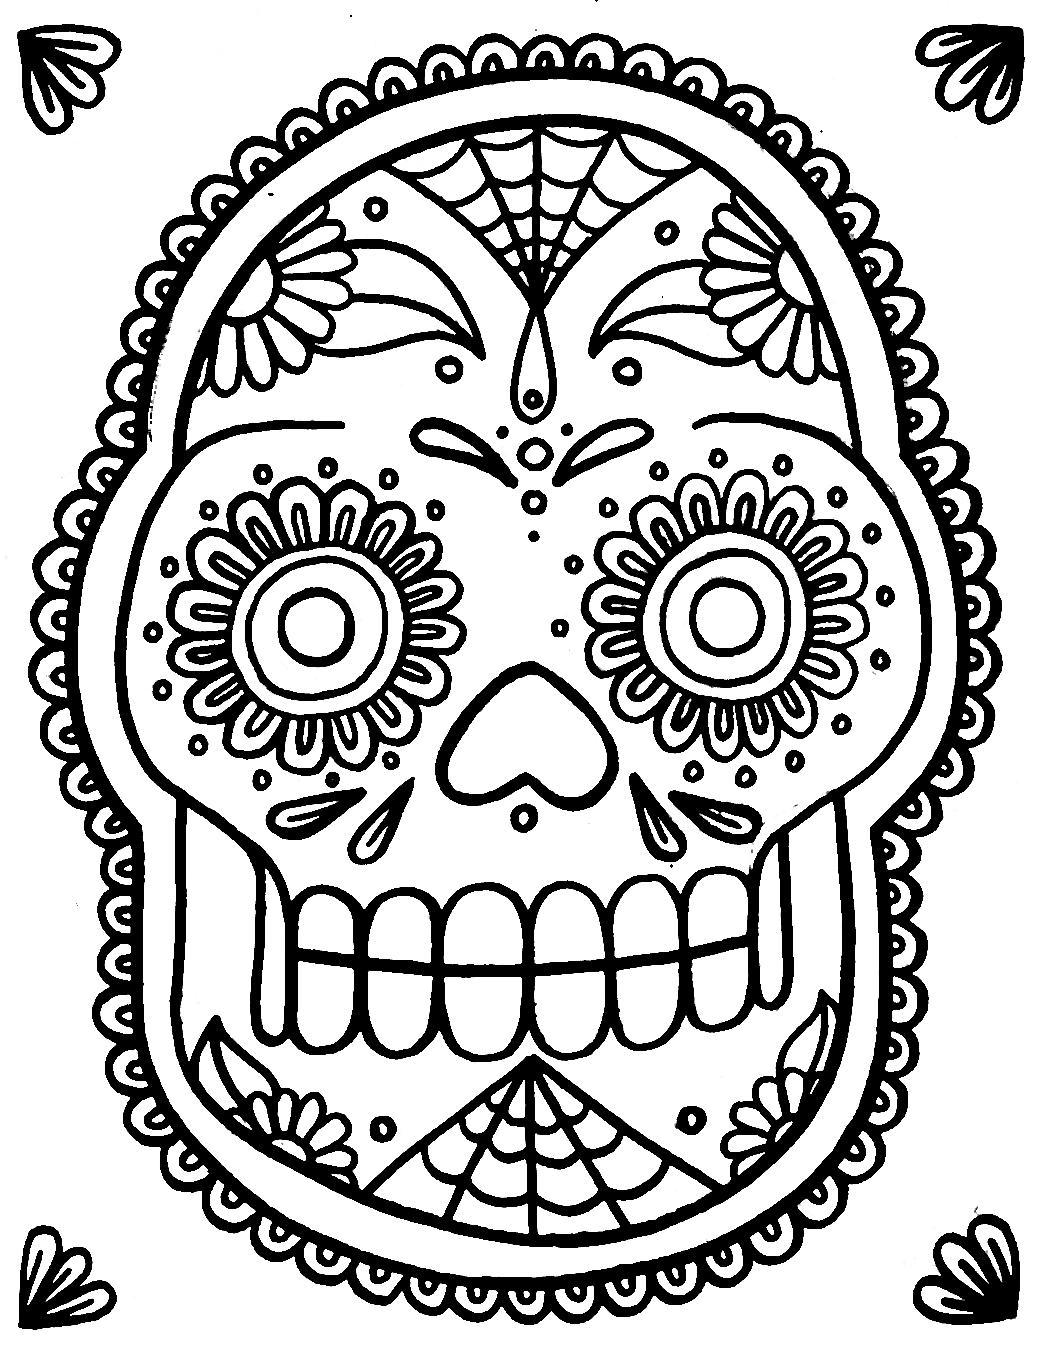 Genius image intended for printable sugar skulls